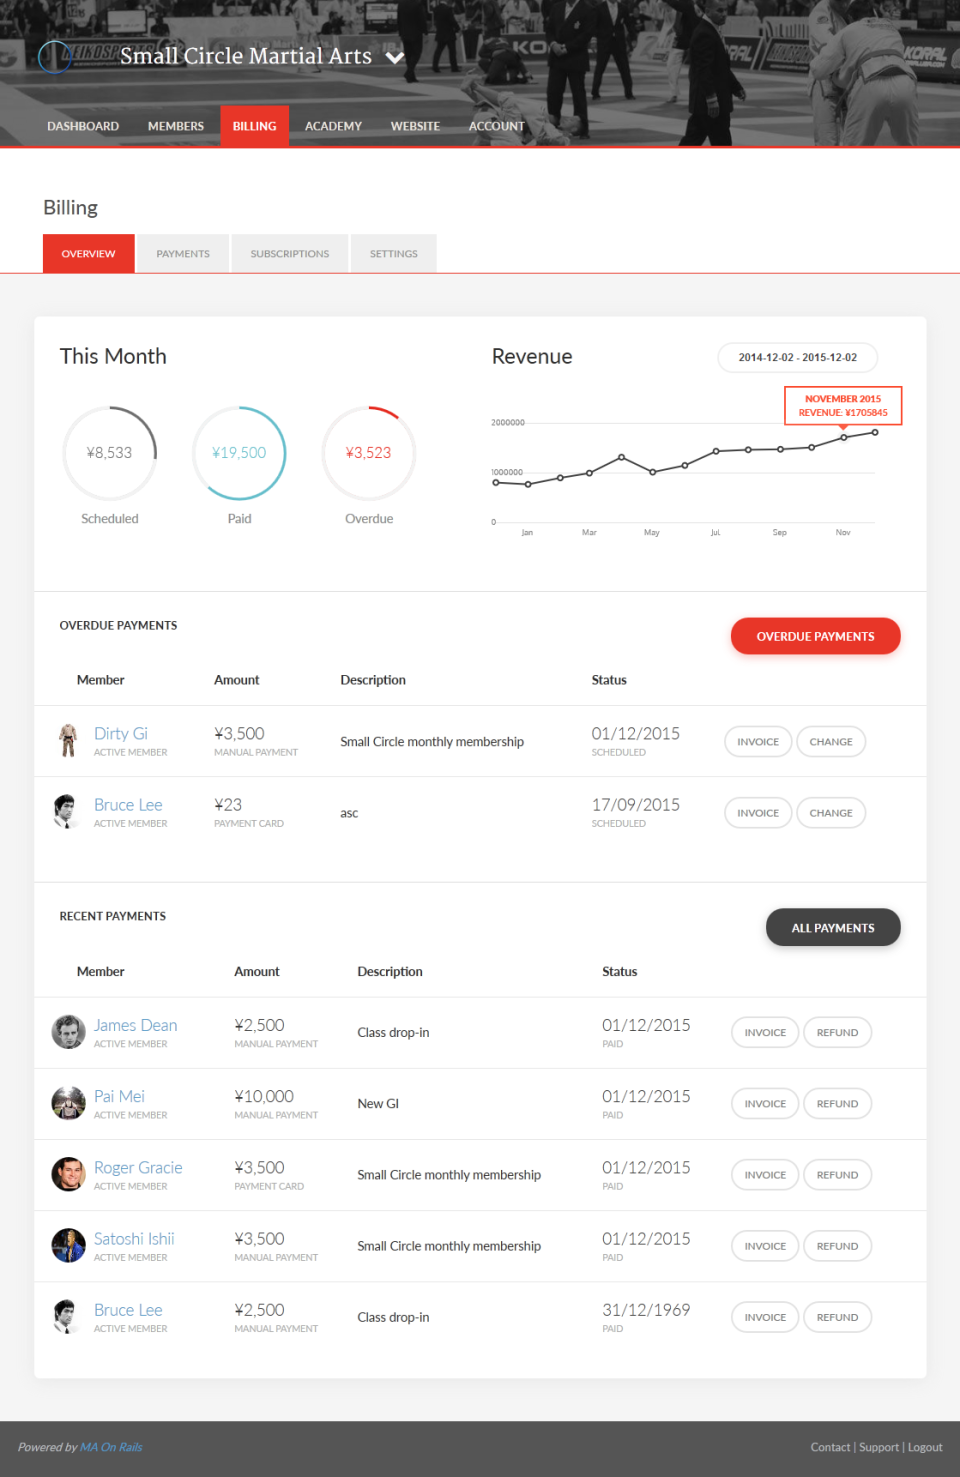 See the entire picture of the gym's finances, with visualization of scheduled revenue, monthly income, overdue payment notifications and more